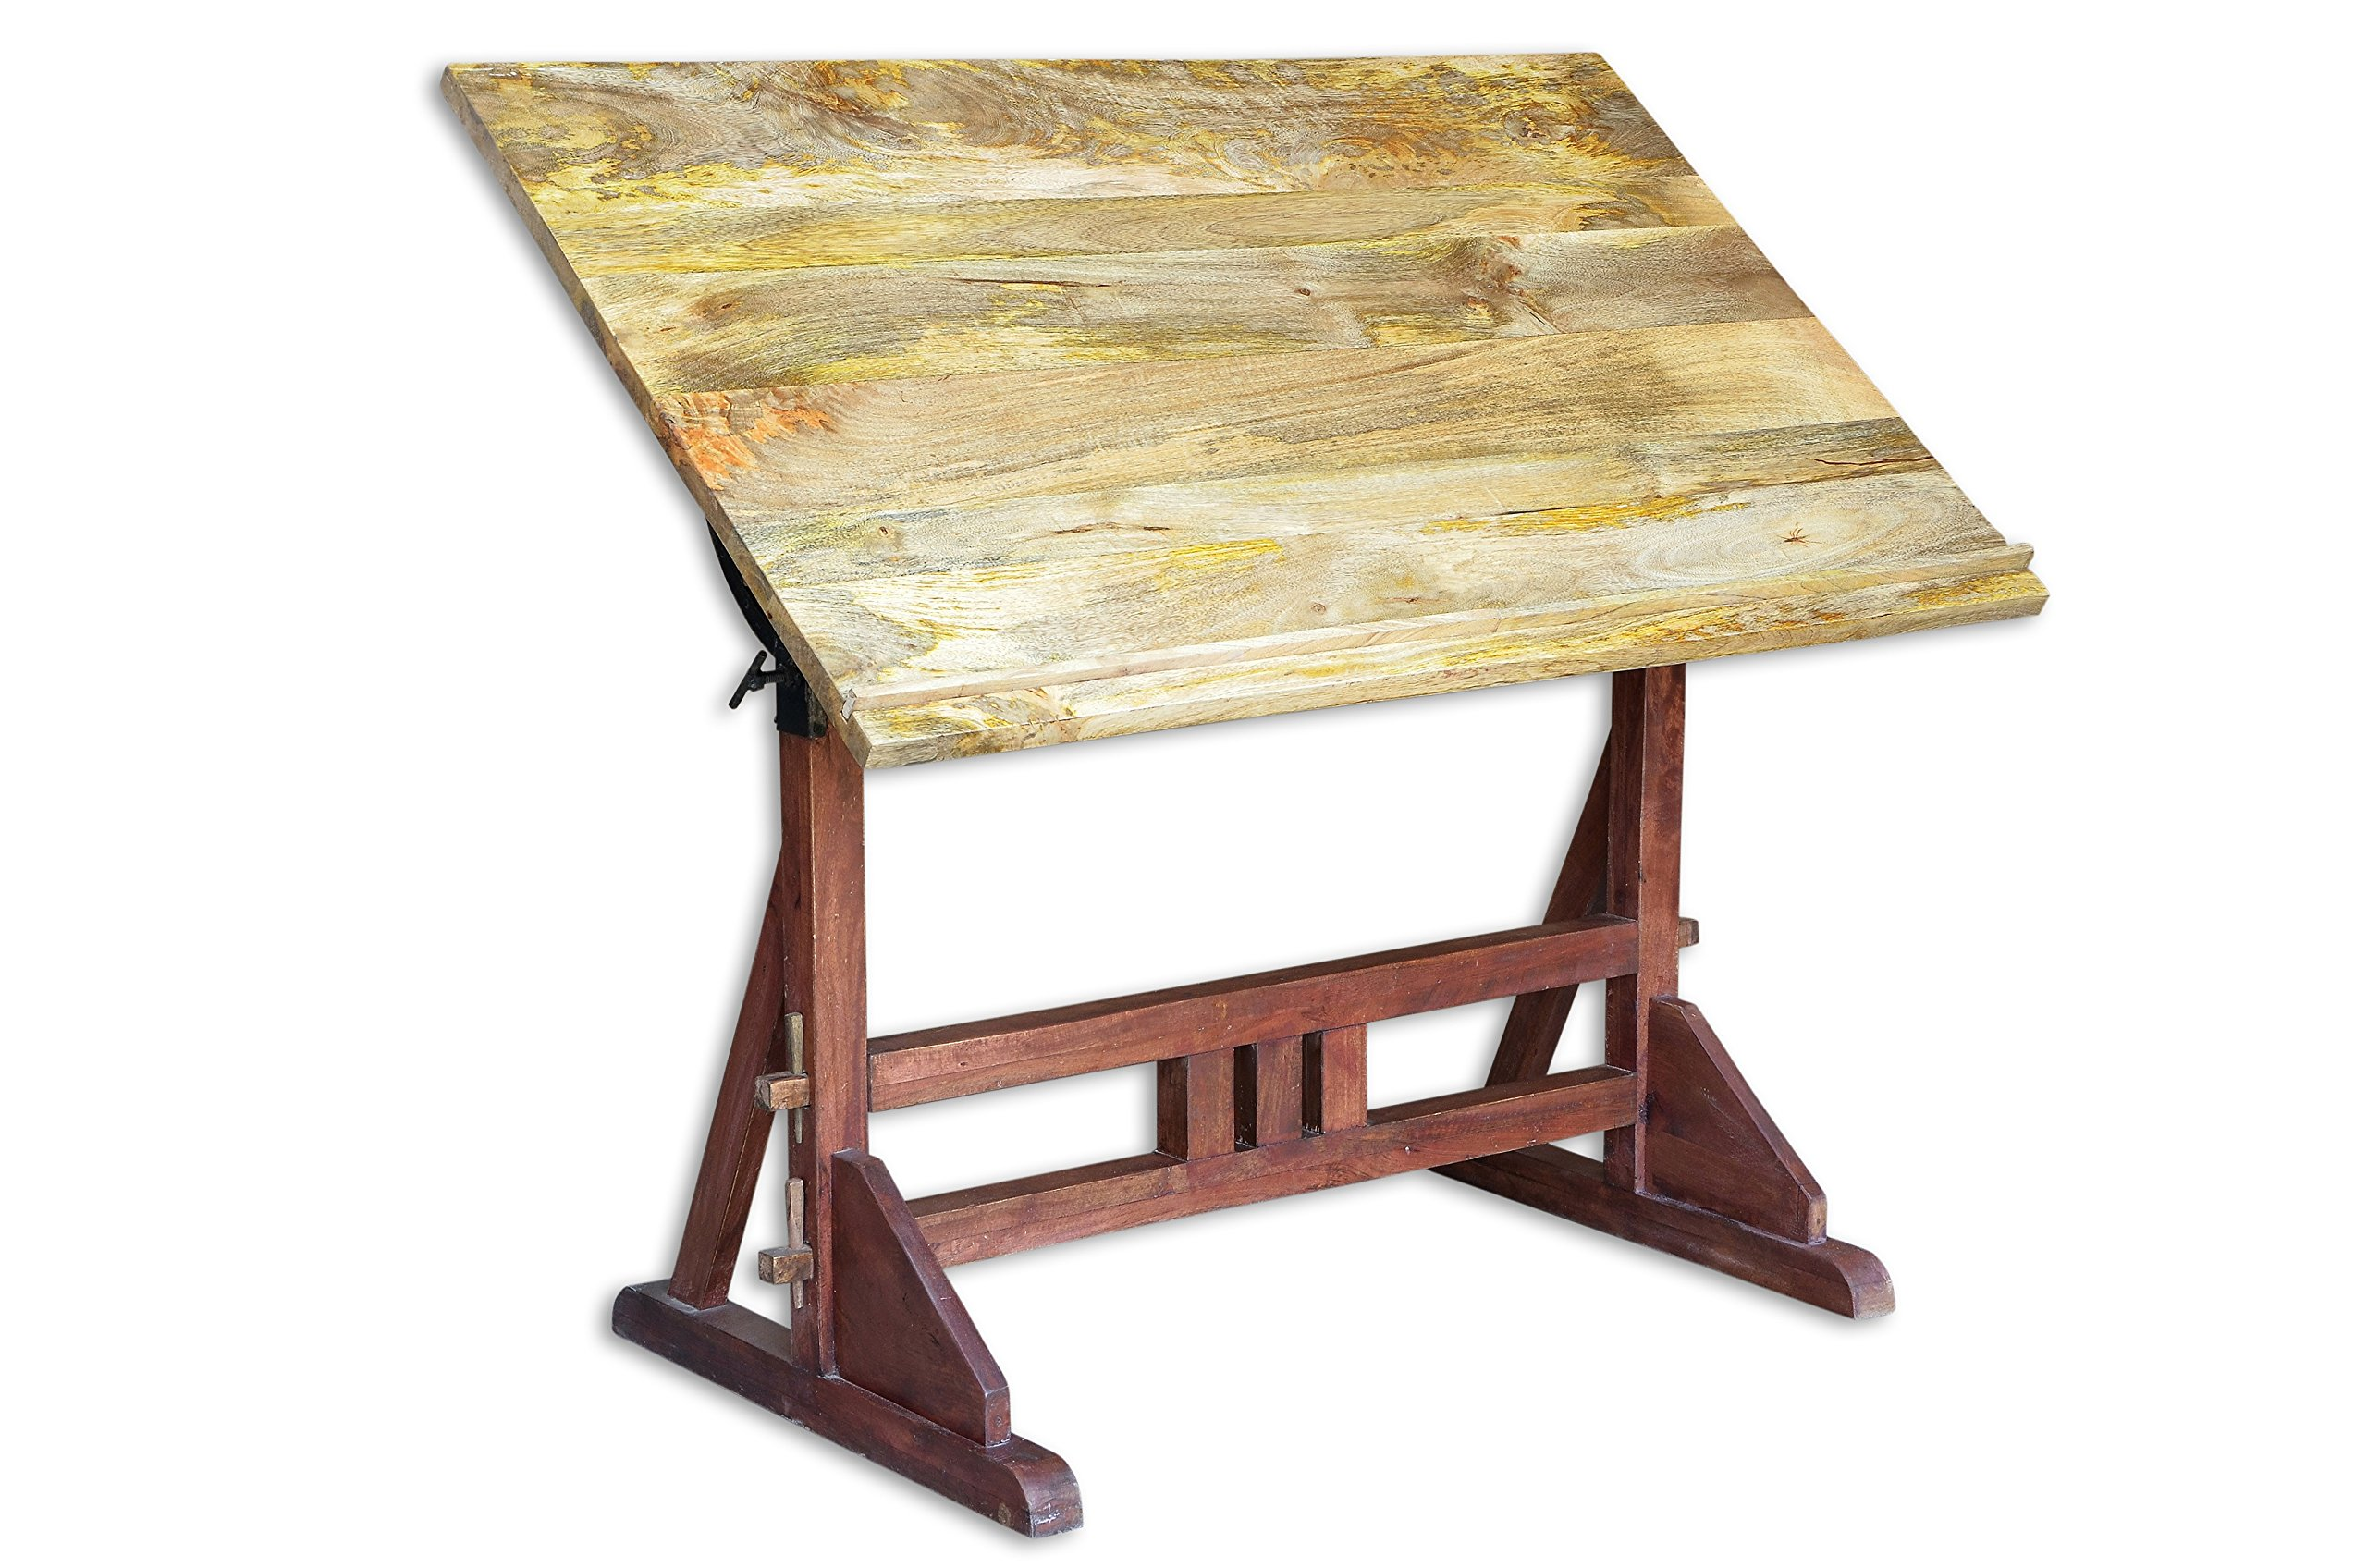 CDI FURNITURE BR1046 Industrial Draft Desk Turn in Straight Table, 52 x 38 x 24-Inch